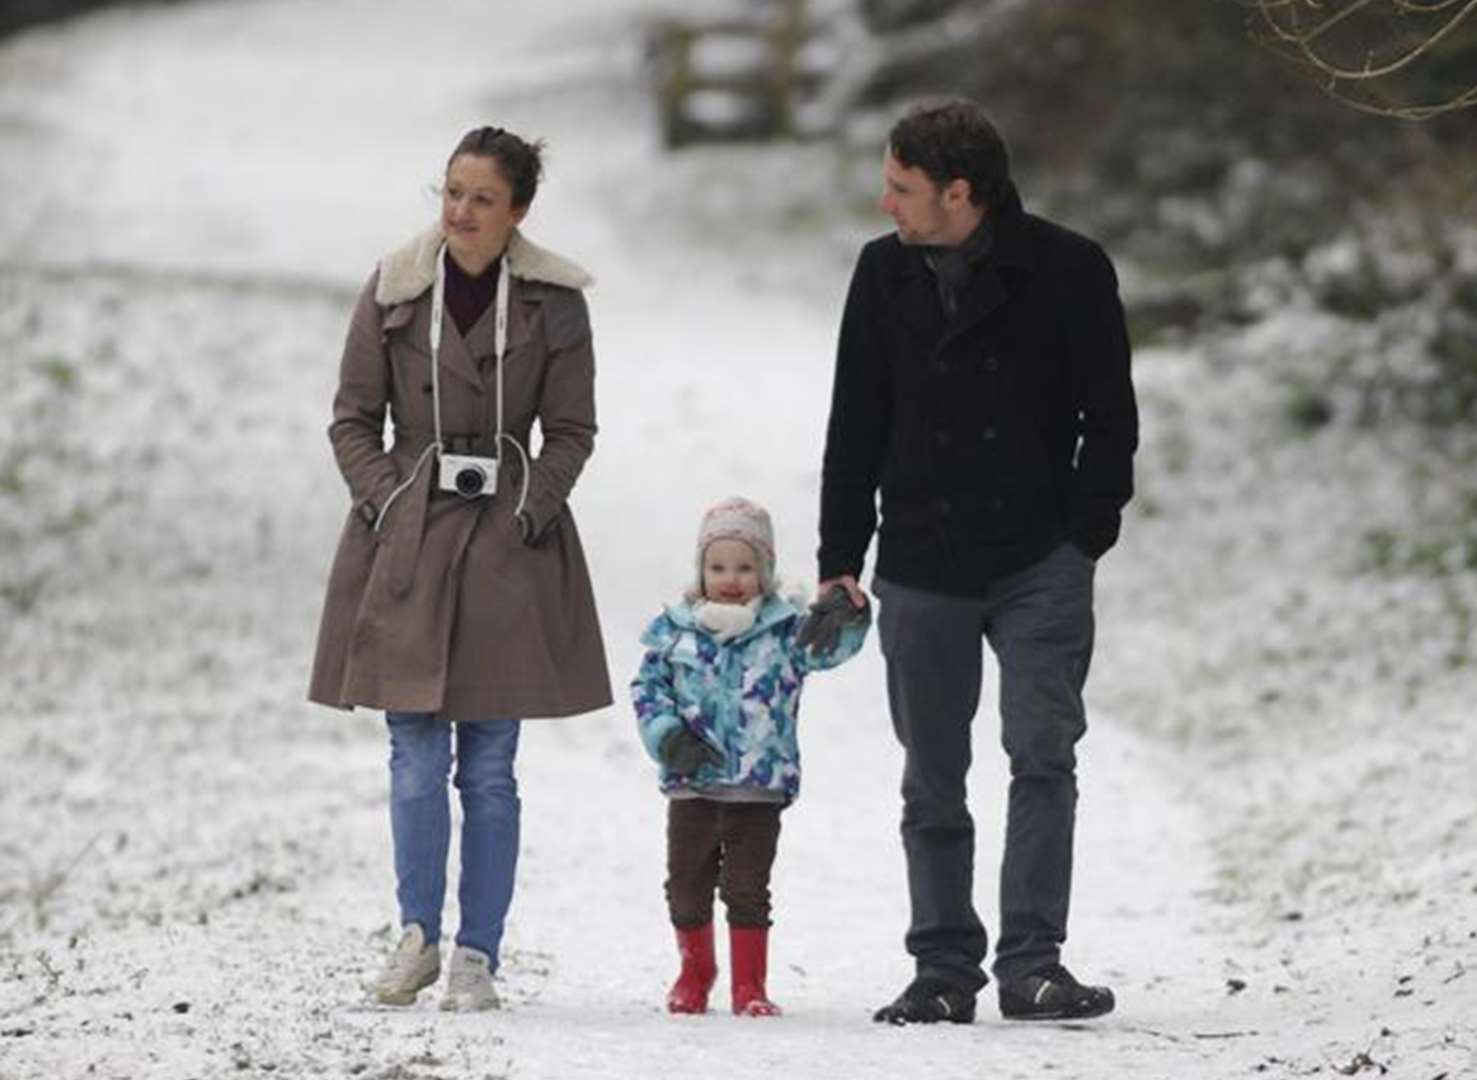 Snow starts to fall in towns and villages